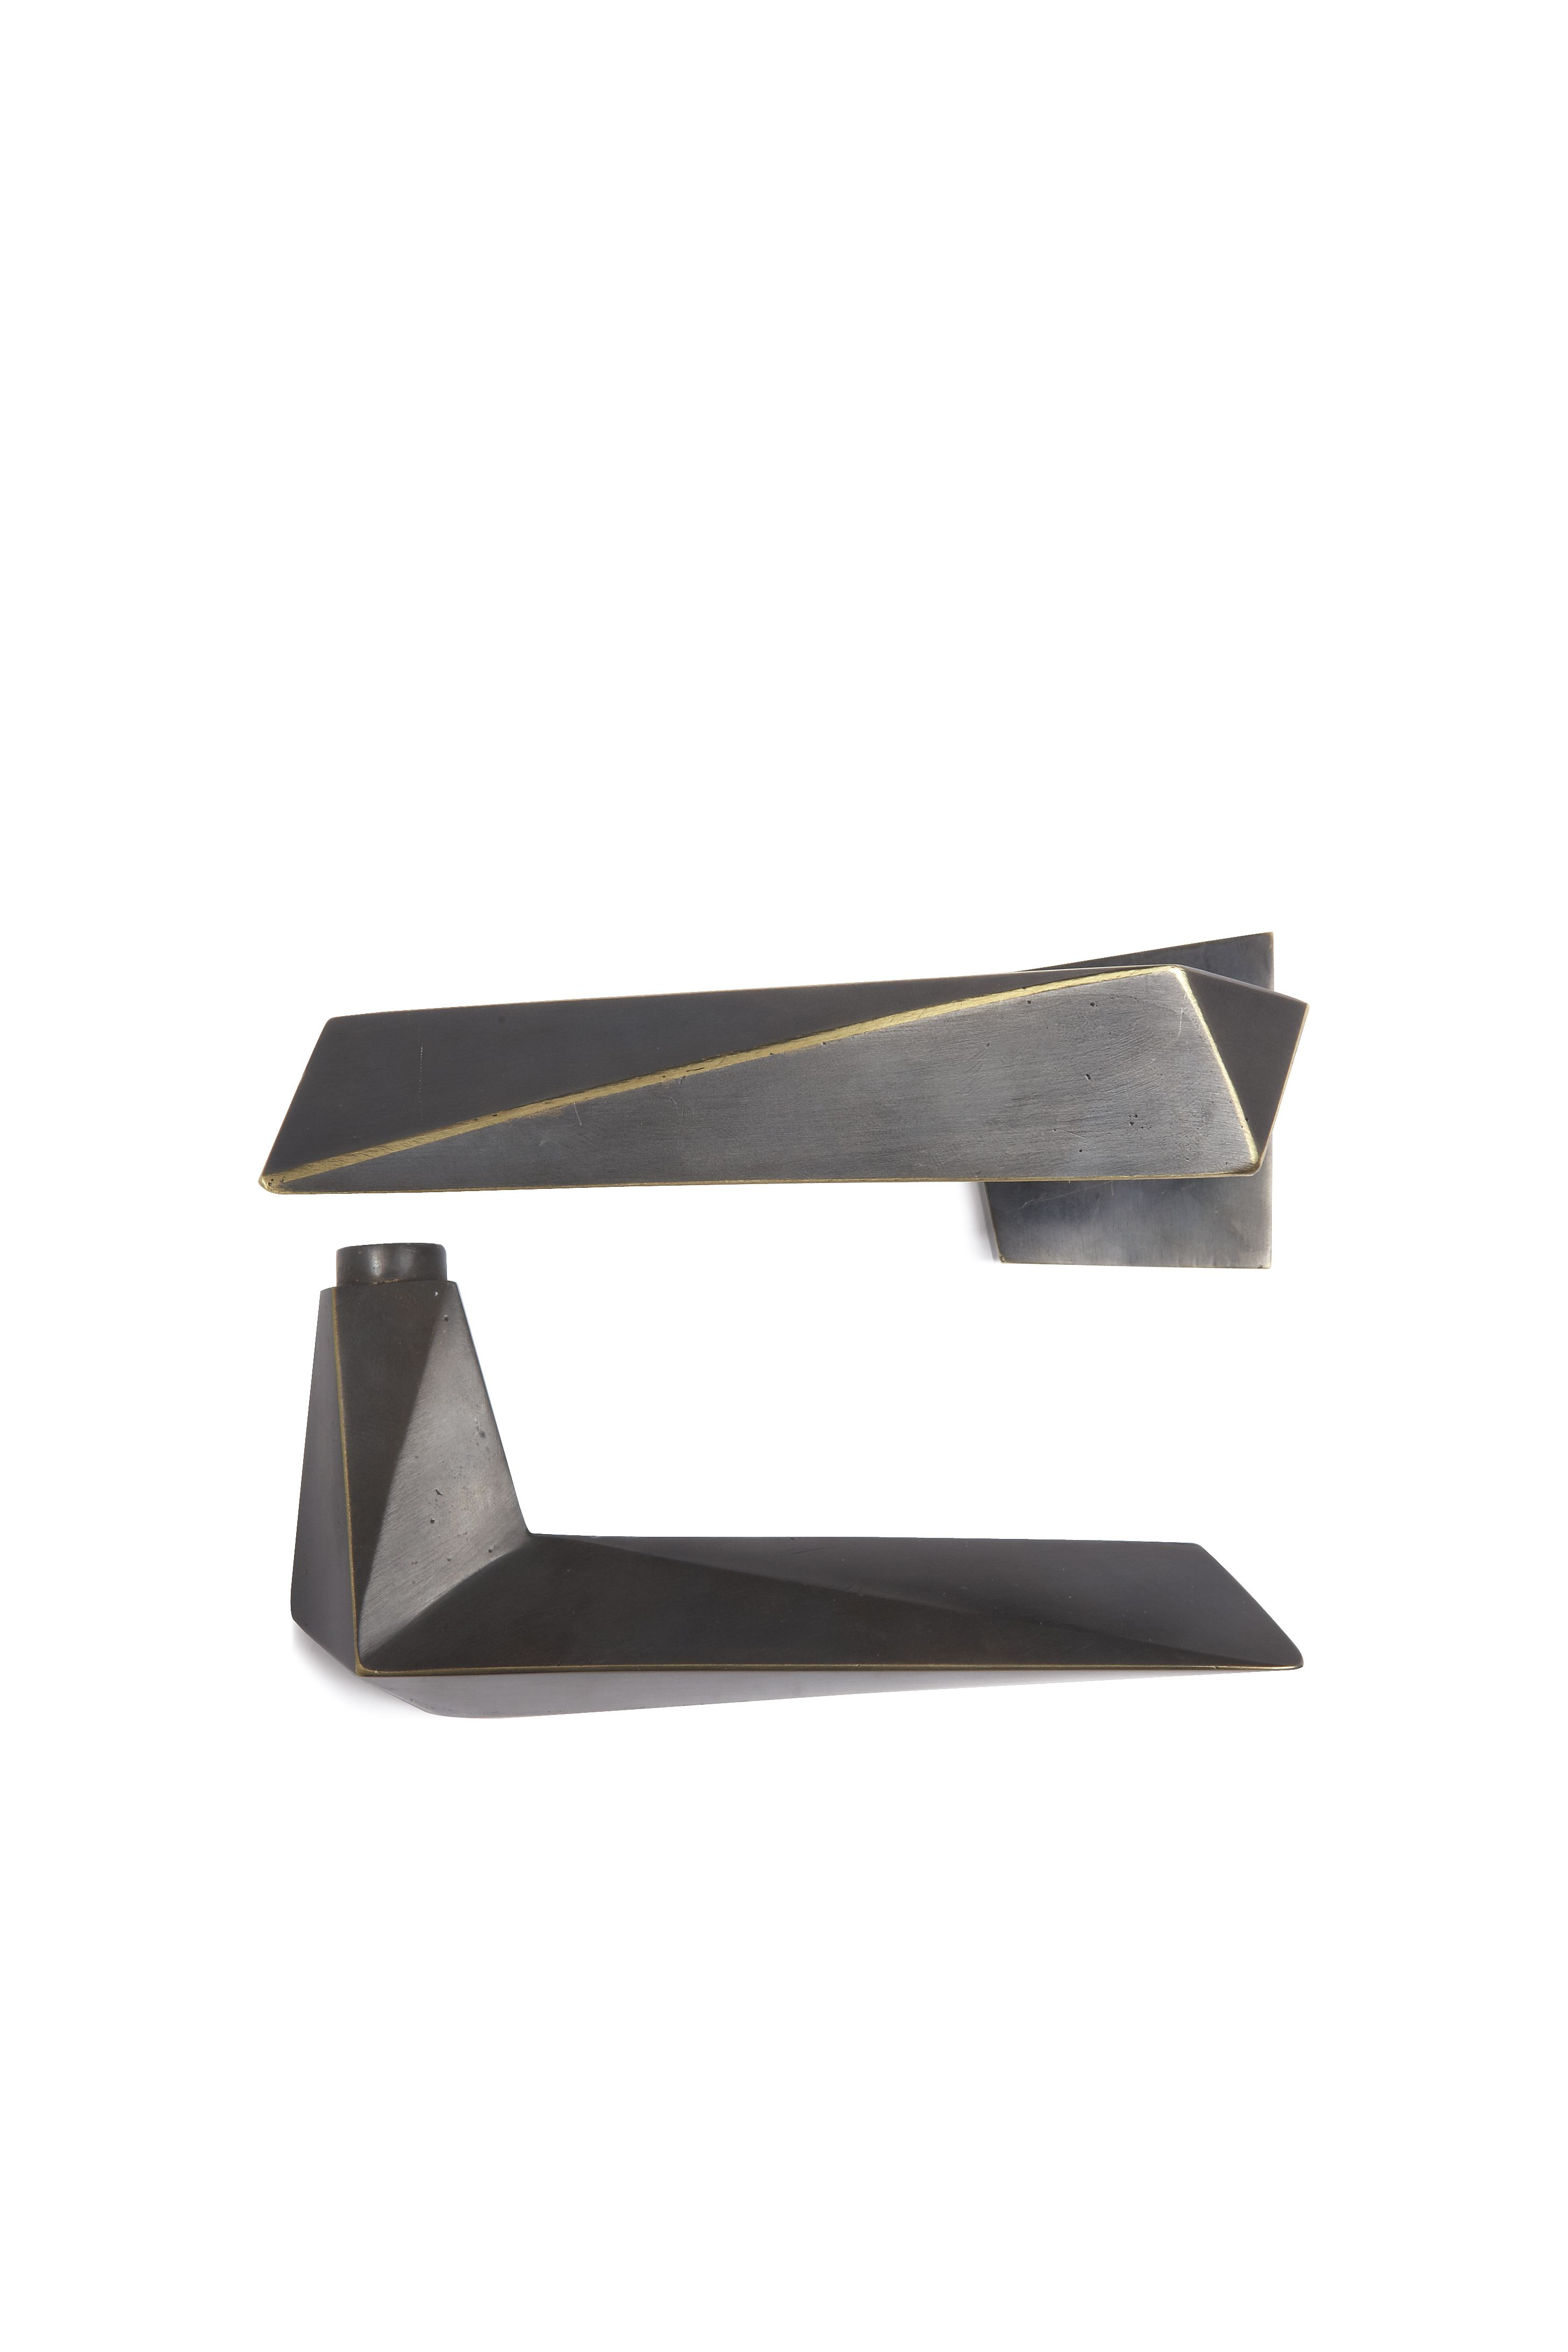 Meuble Langlais Bronze Door Handles Design By Hervé Langlais Hardware